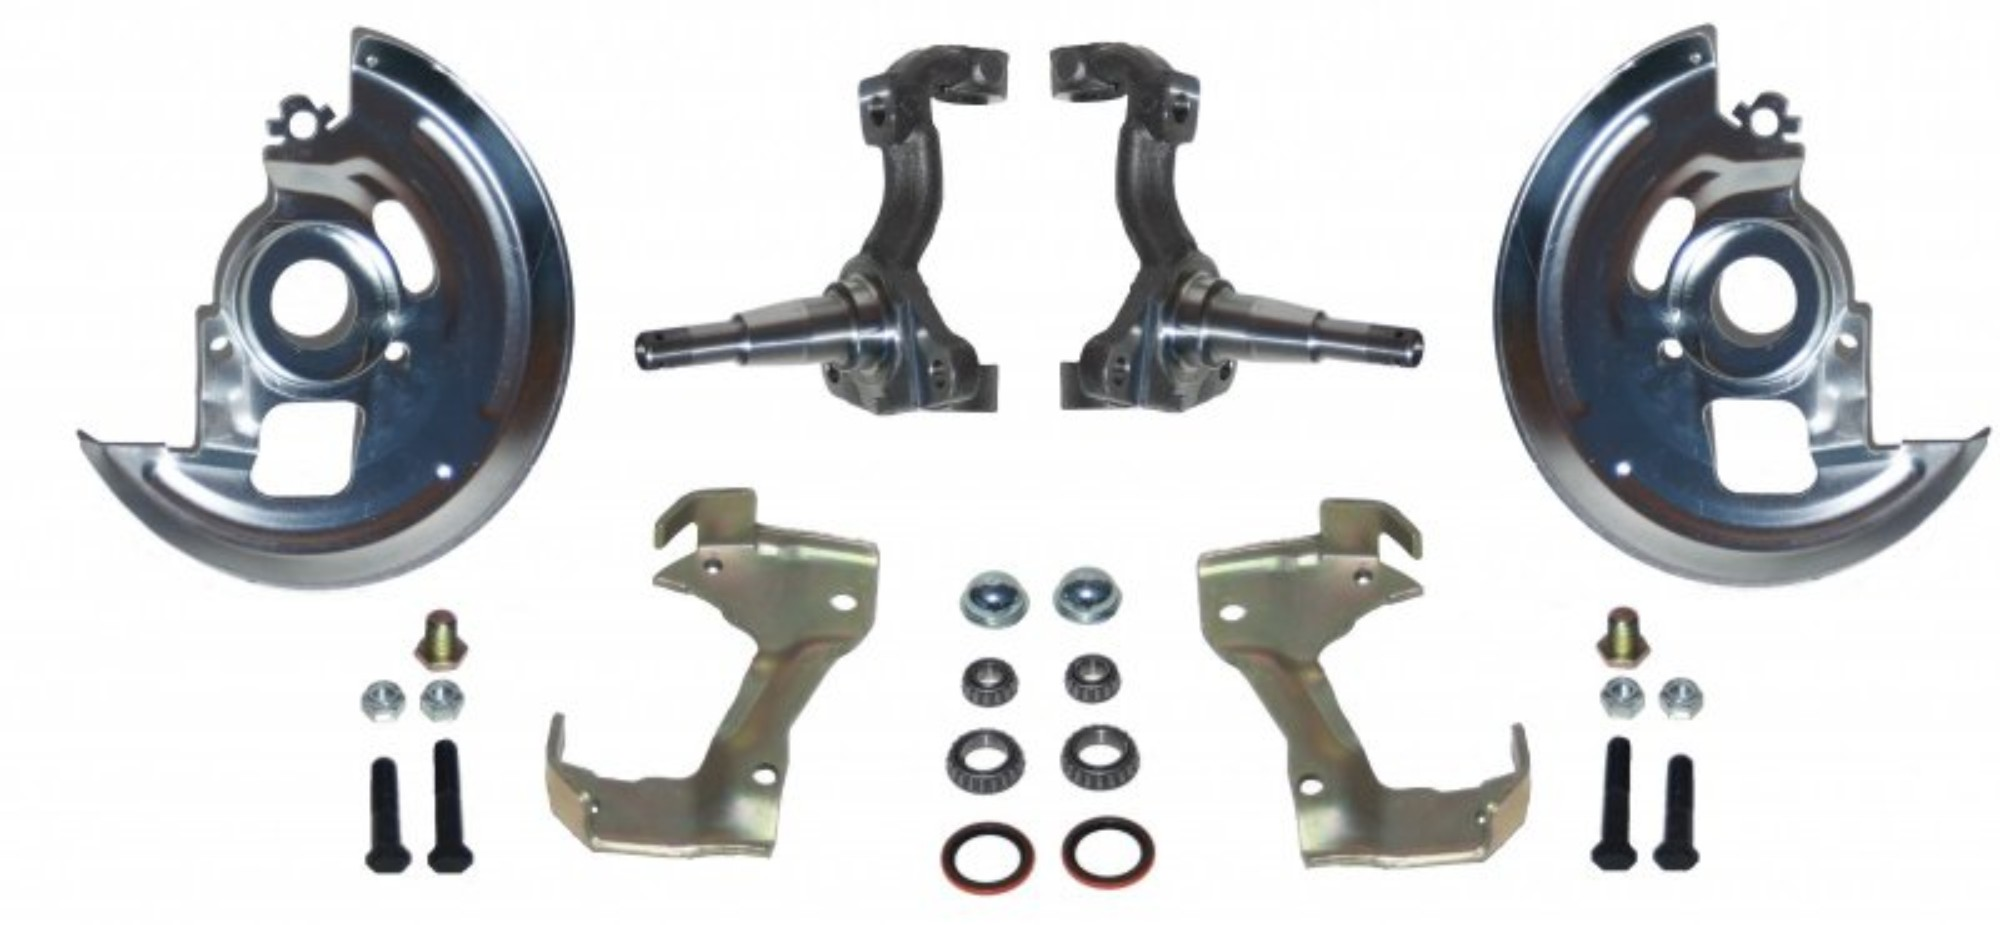 LEED Brakes AFXMD Front Conversion Kit - Mini kit